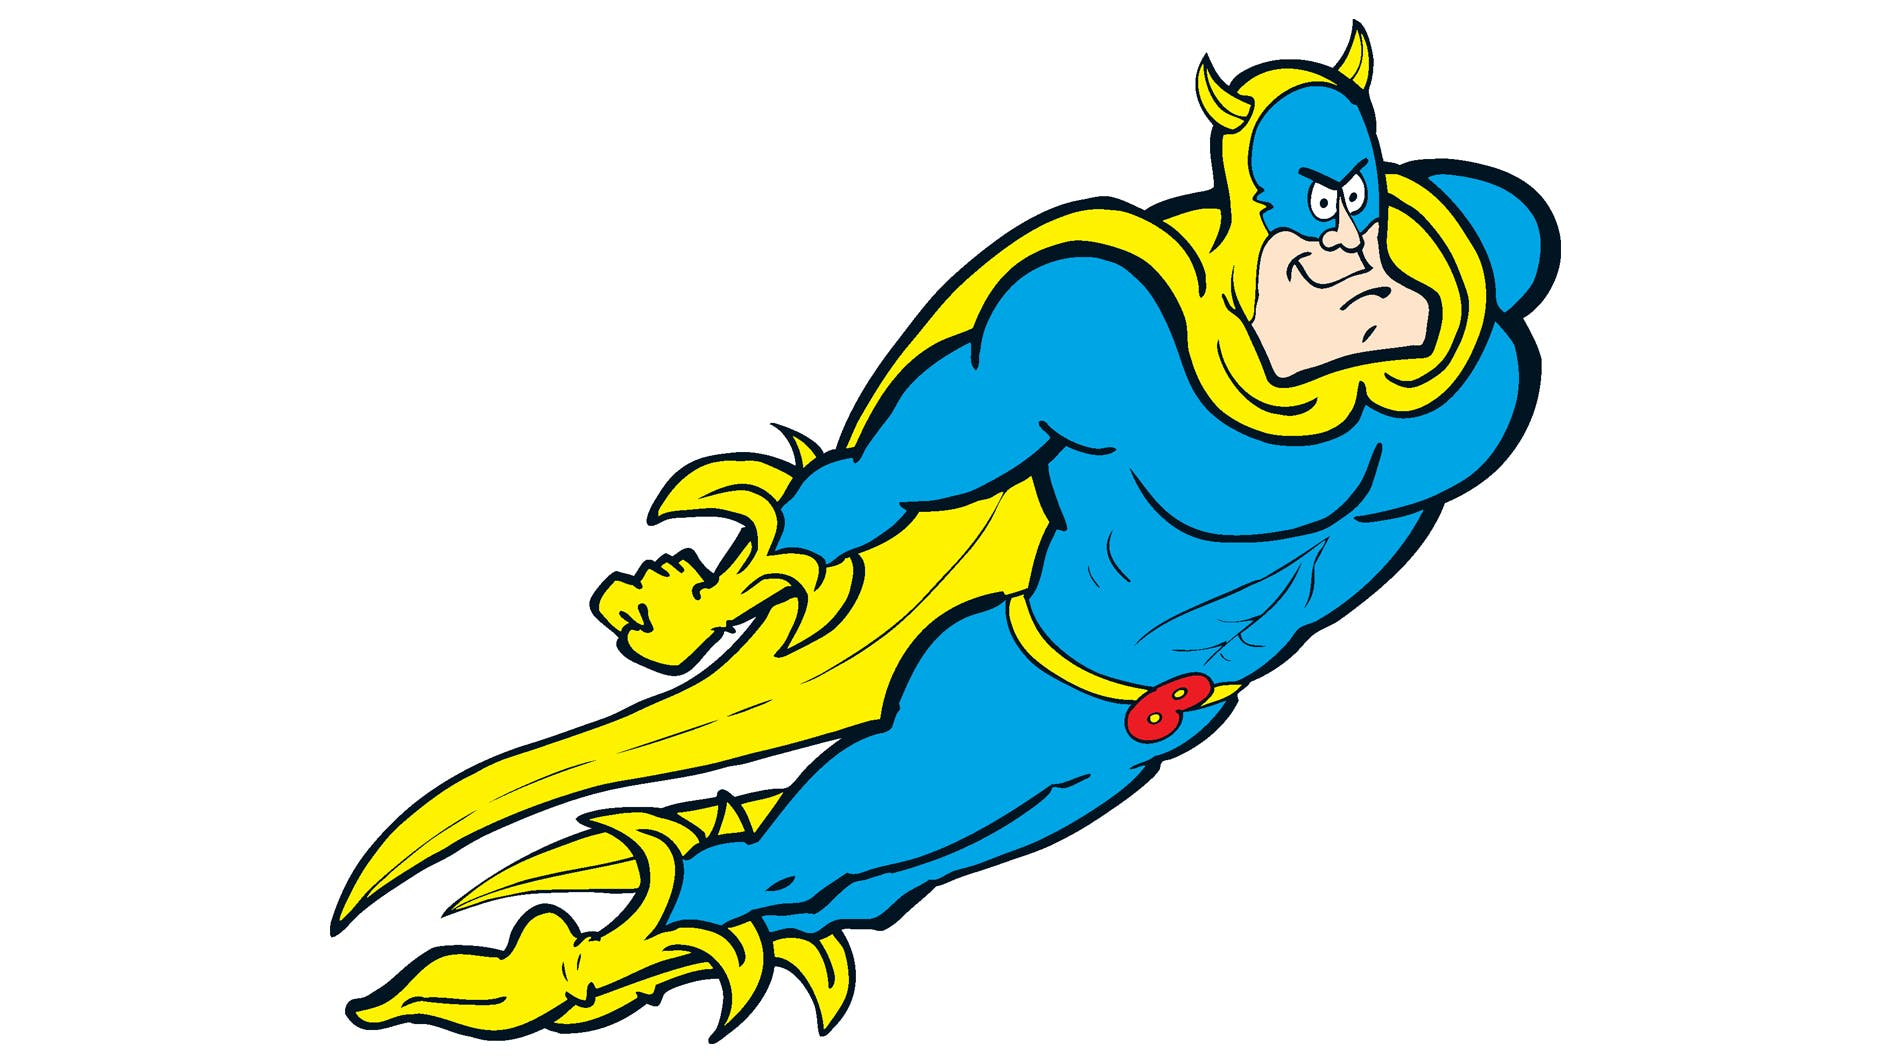 Bananaman from Beano